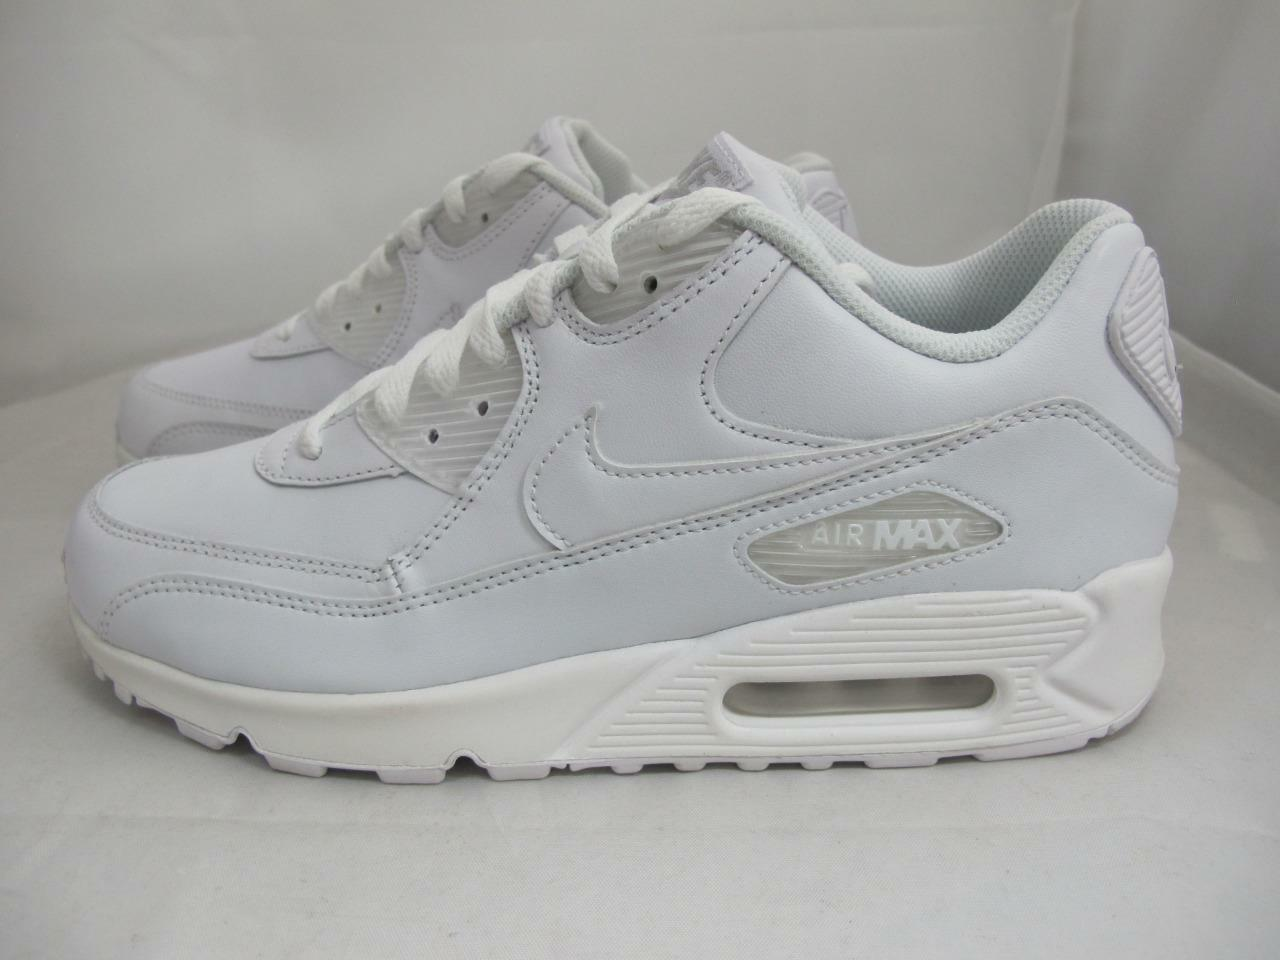 NEW MEN'S NIKE AIR MAX 90 LEATHER